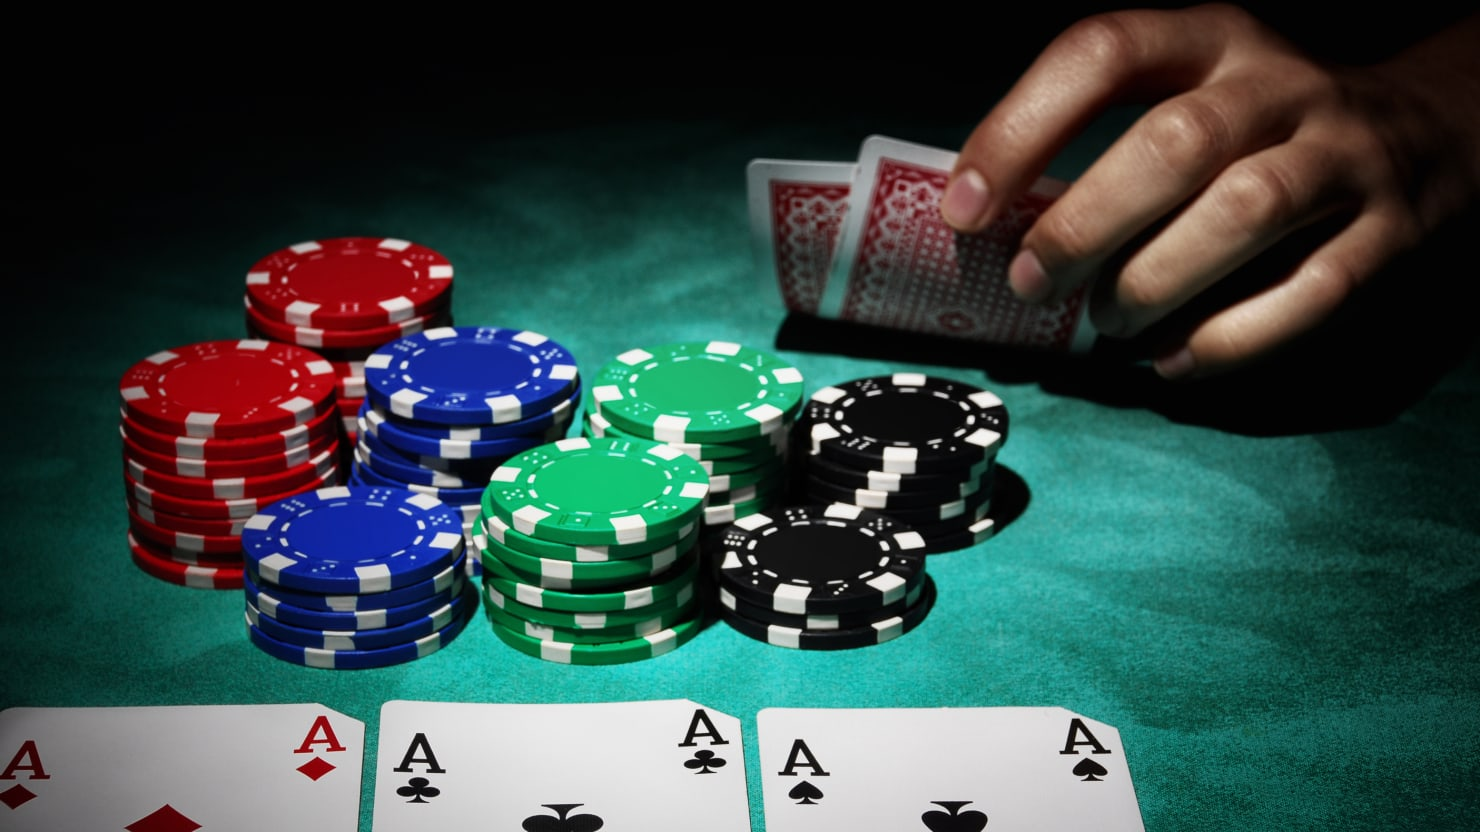 Computing Casino Video Poker Odds Could Reduce